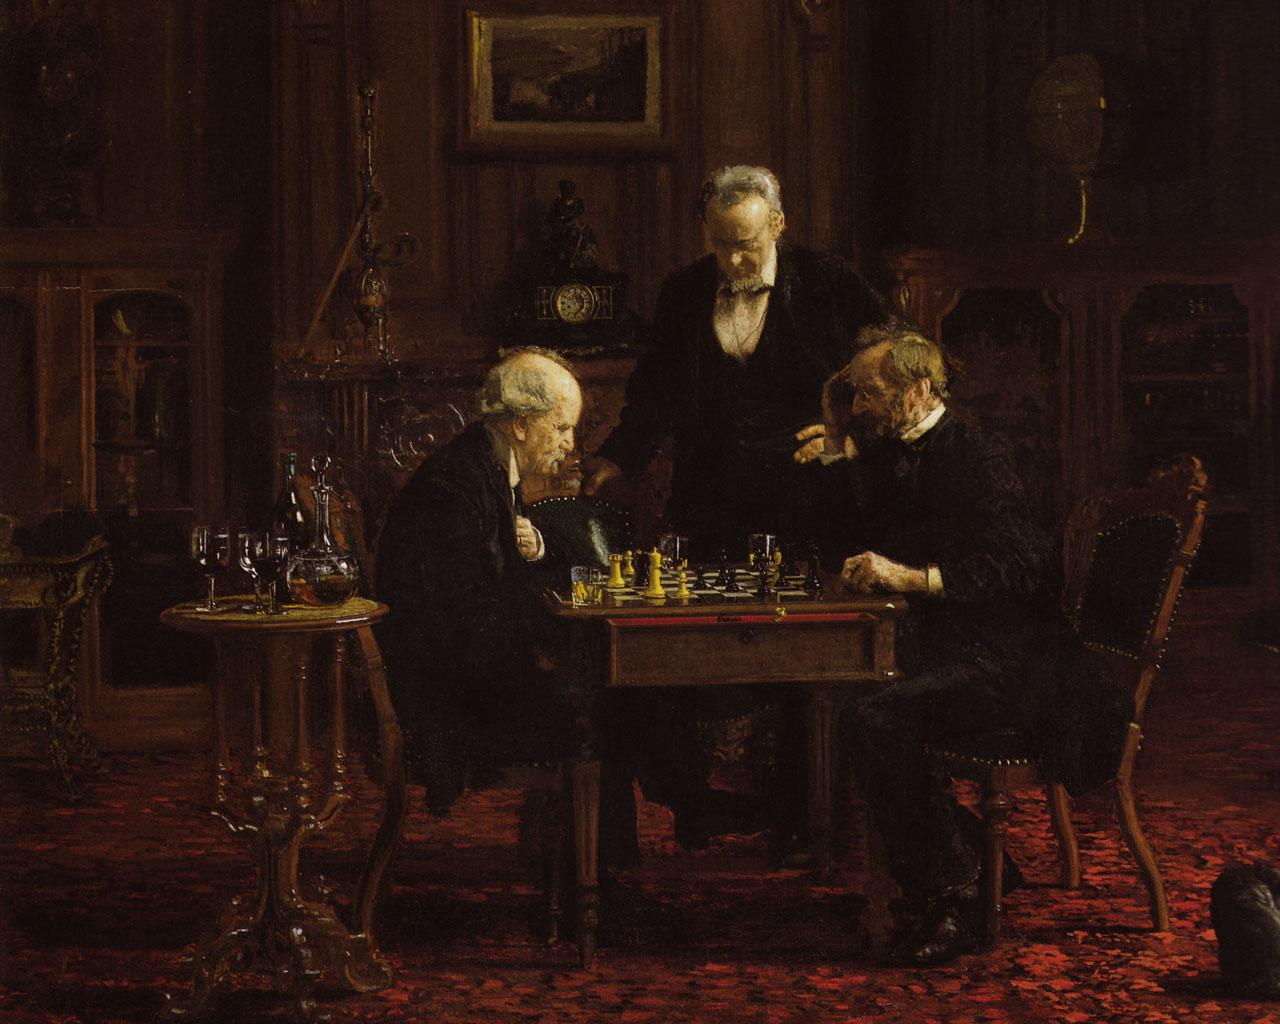 Thomas Eakins - The Chess Players (1876) Wallpaper #3 1280 x 1024